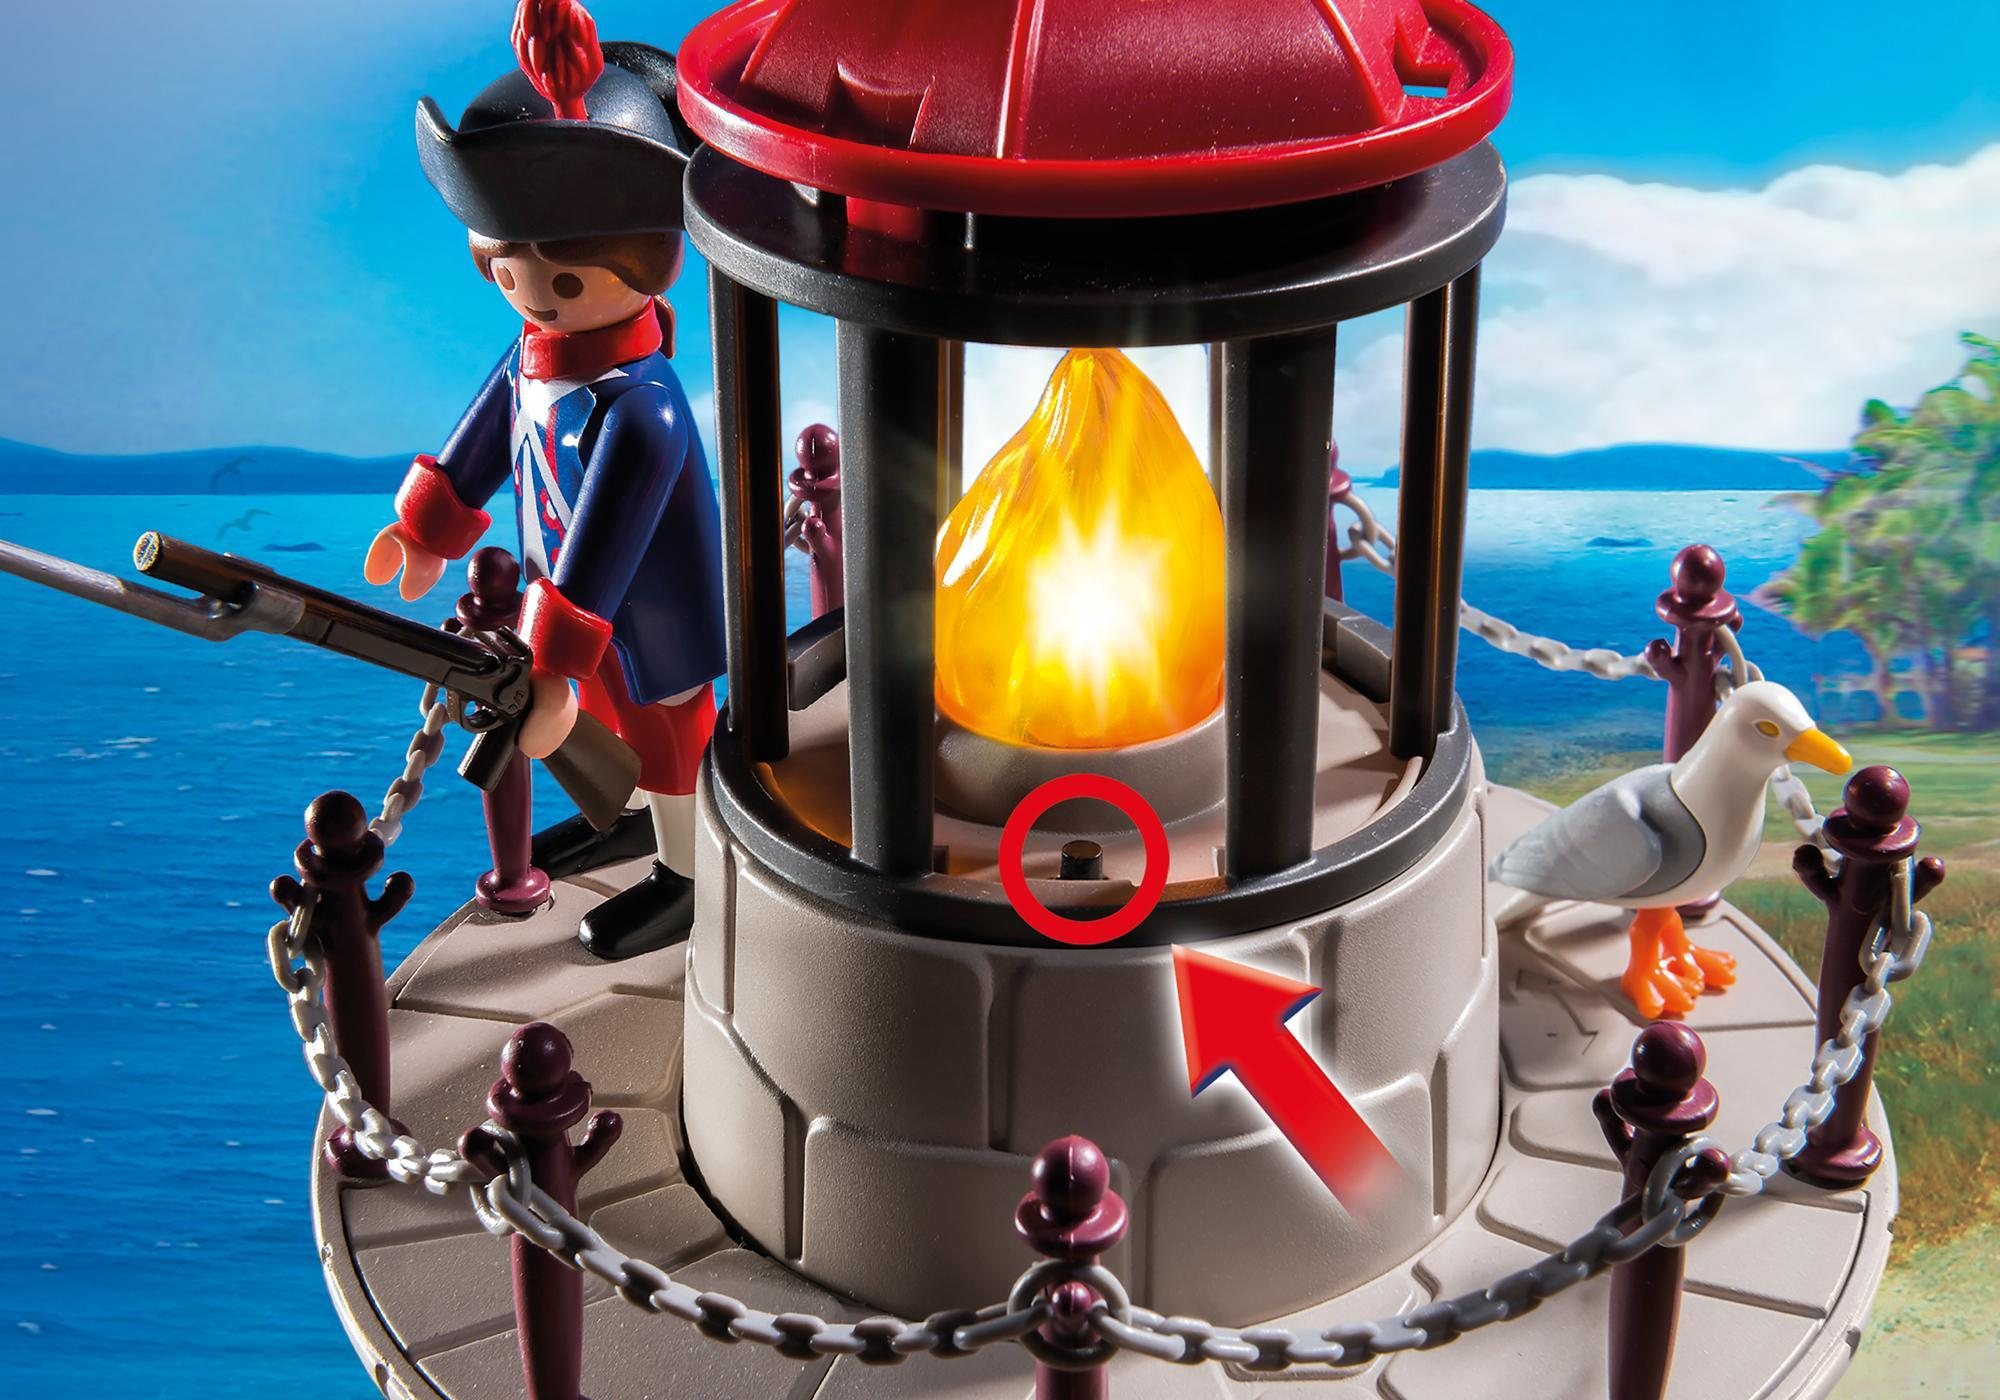 http://media.playmobil.com/i/playmobil/6680_product_extra1